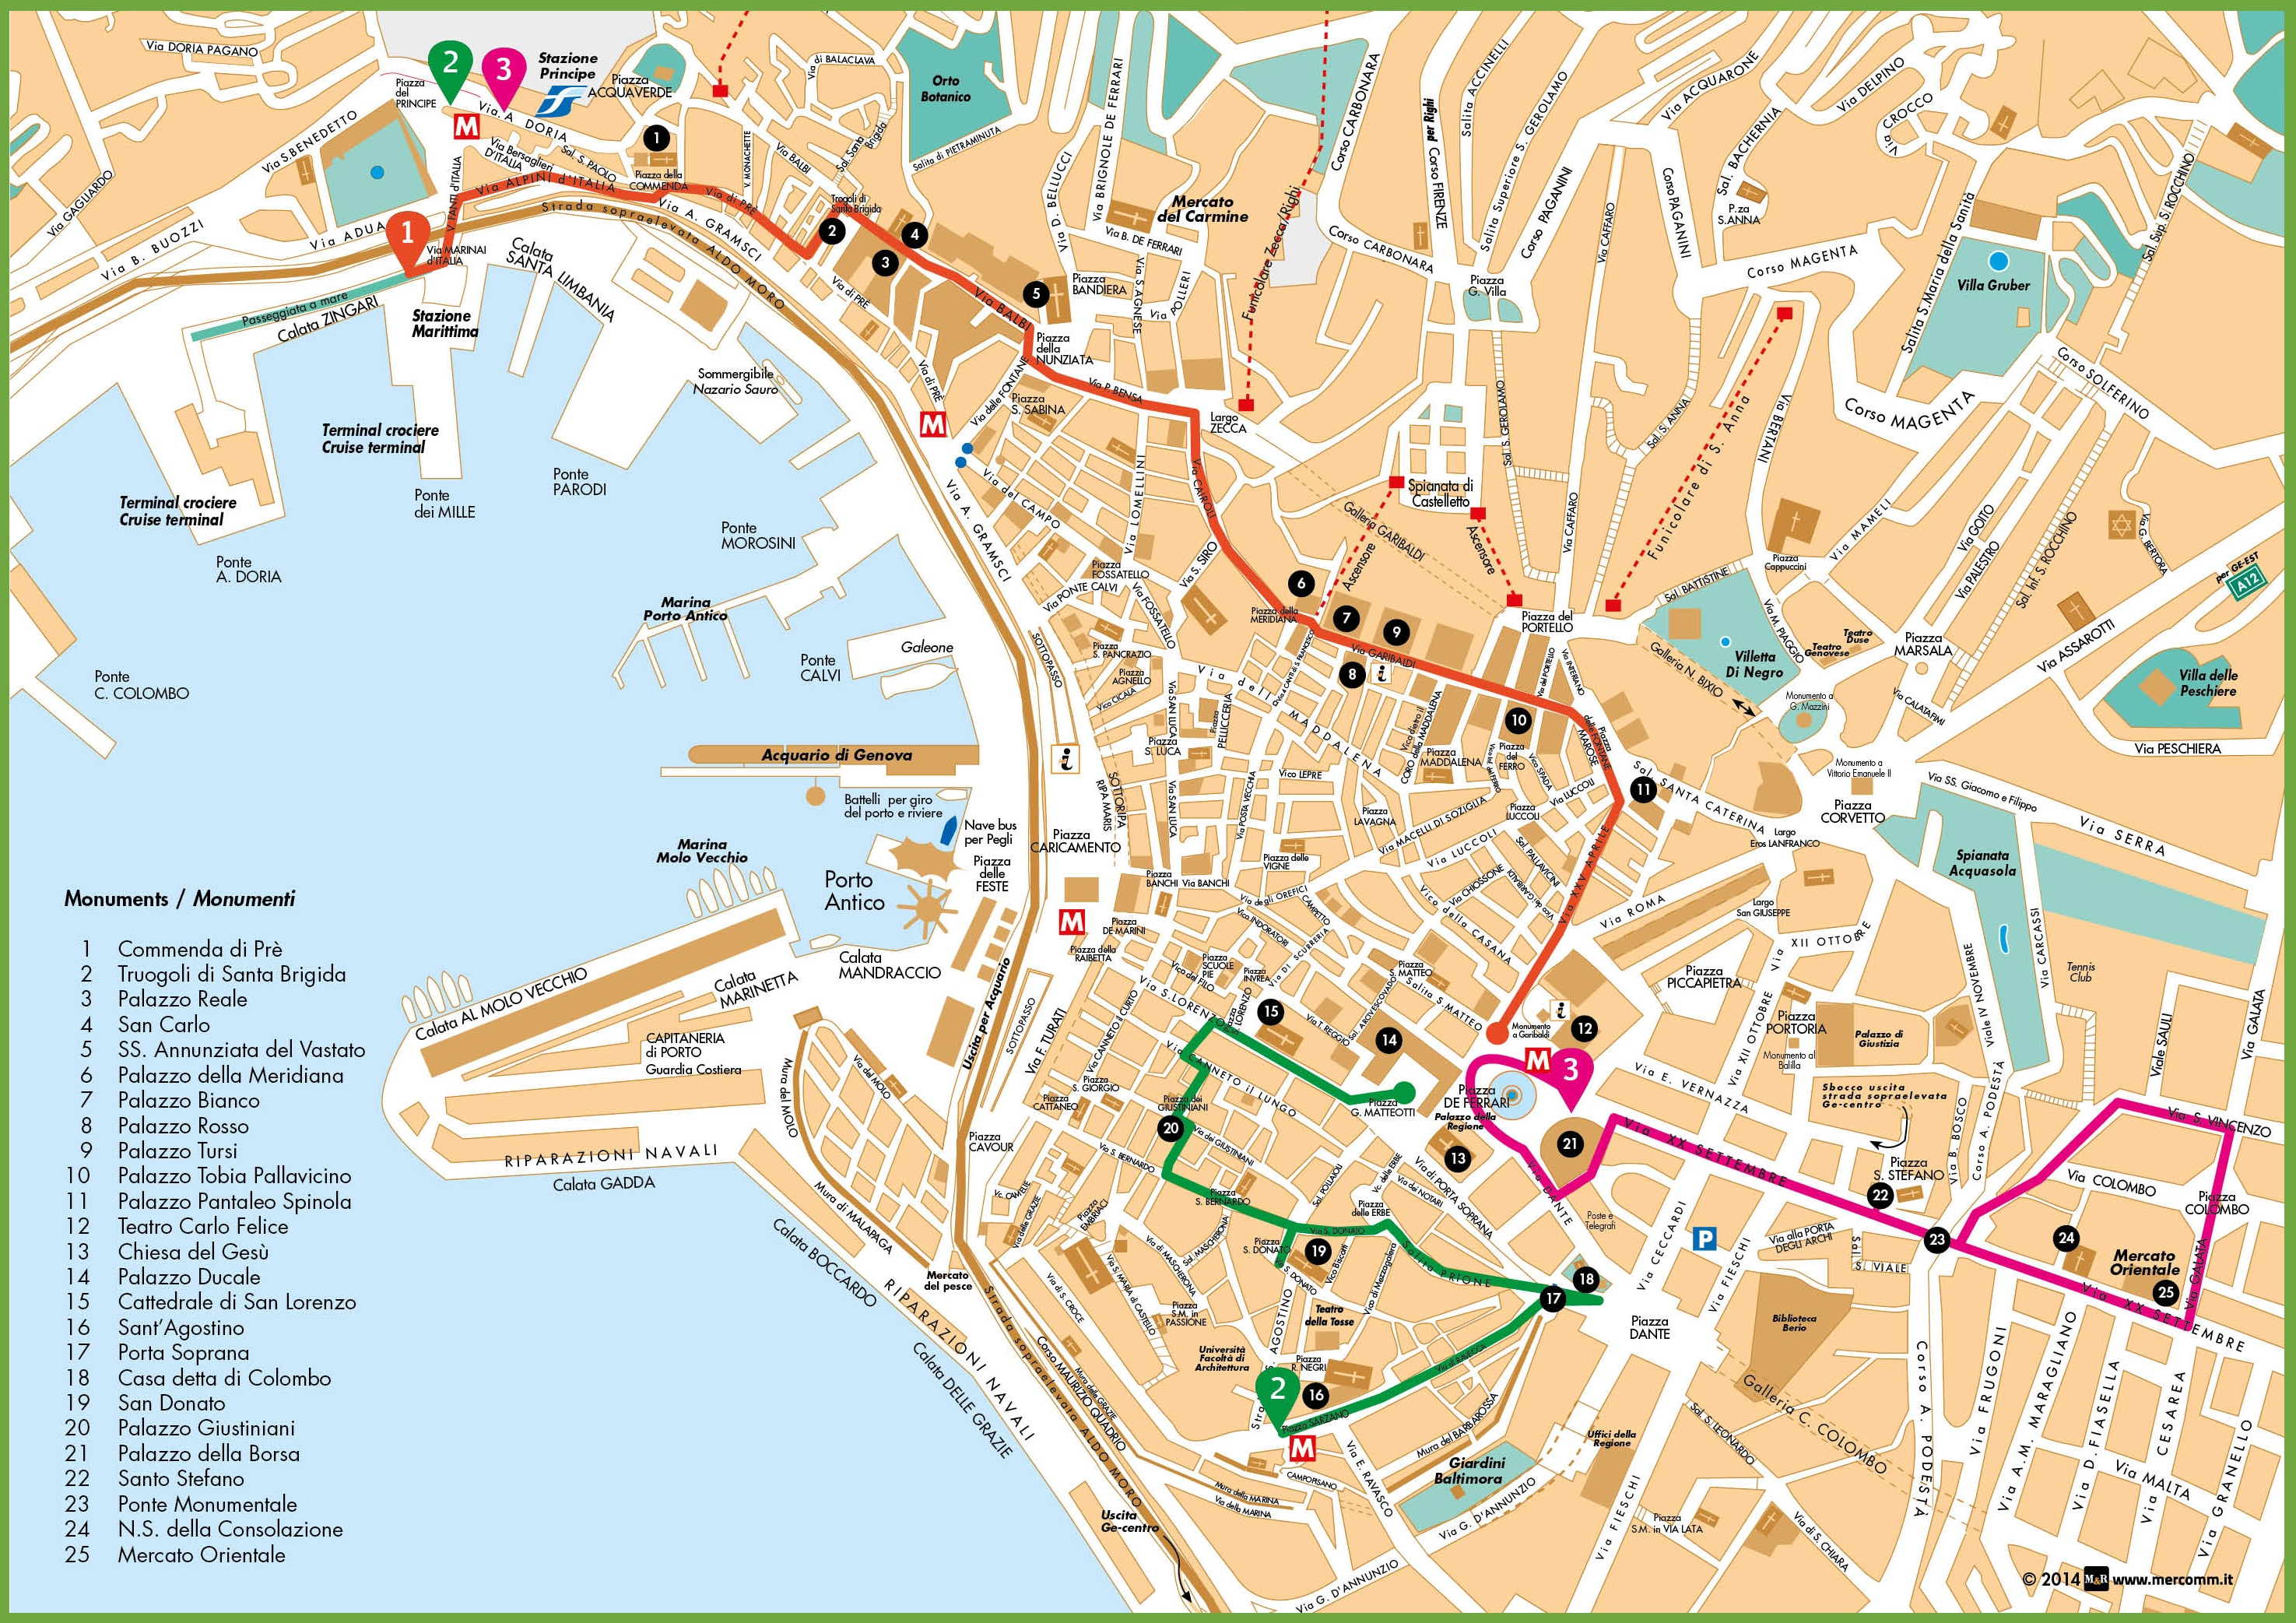 Genoa sightseeing map